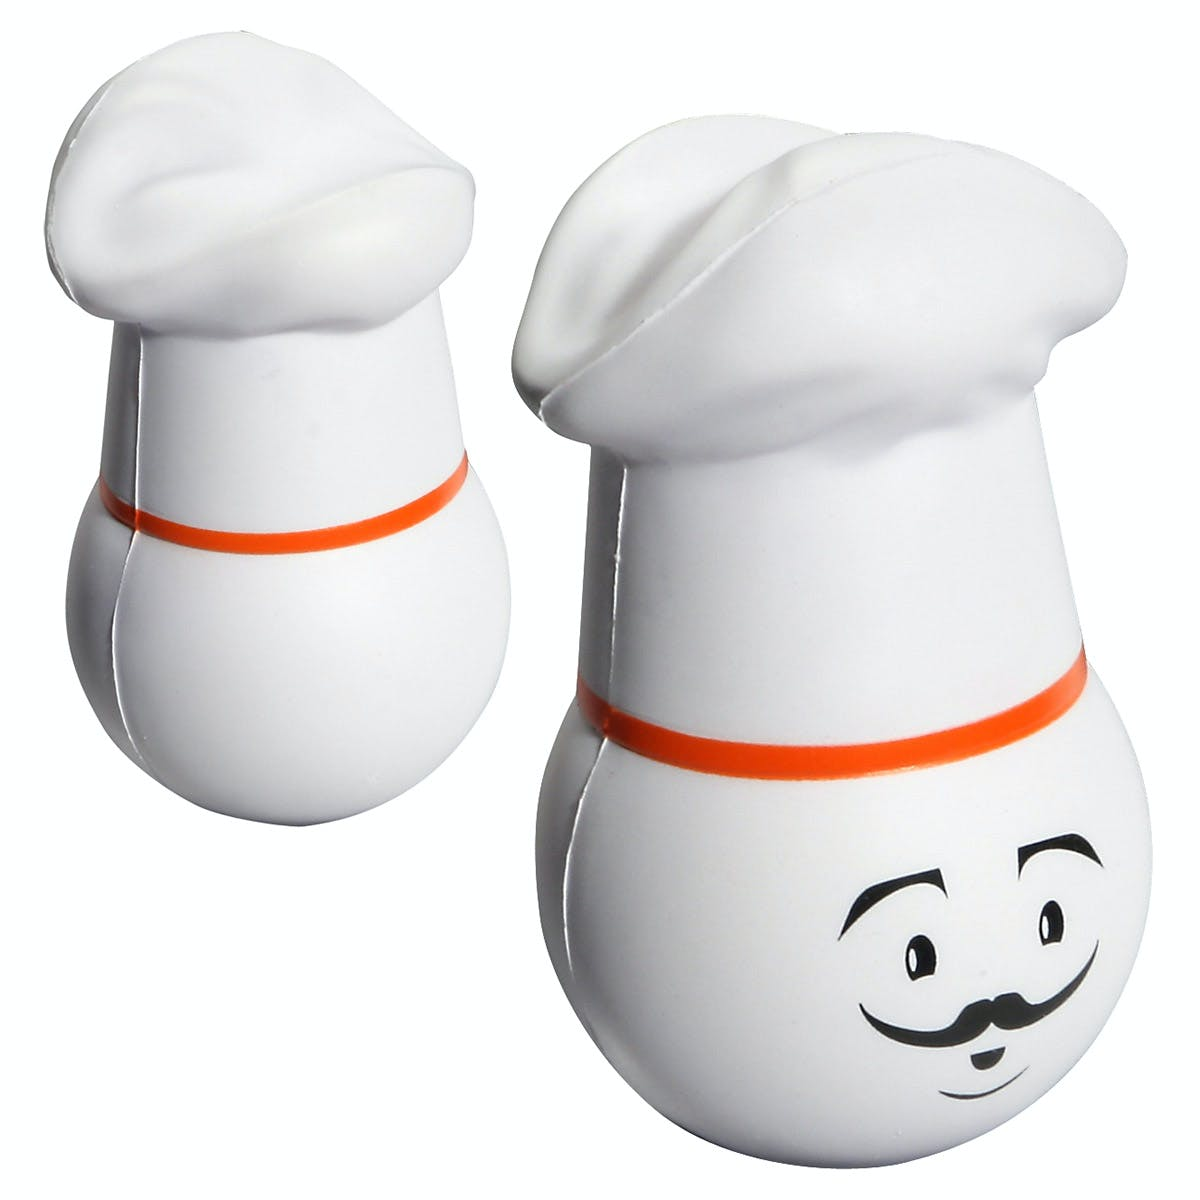 Ariel :: Chef Mad Cap - LMA-CH09 Stress reliever sold by Distrimatics, USA